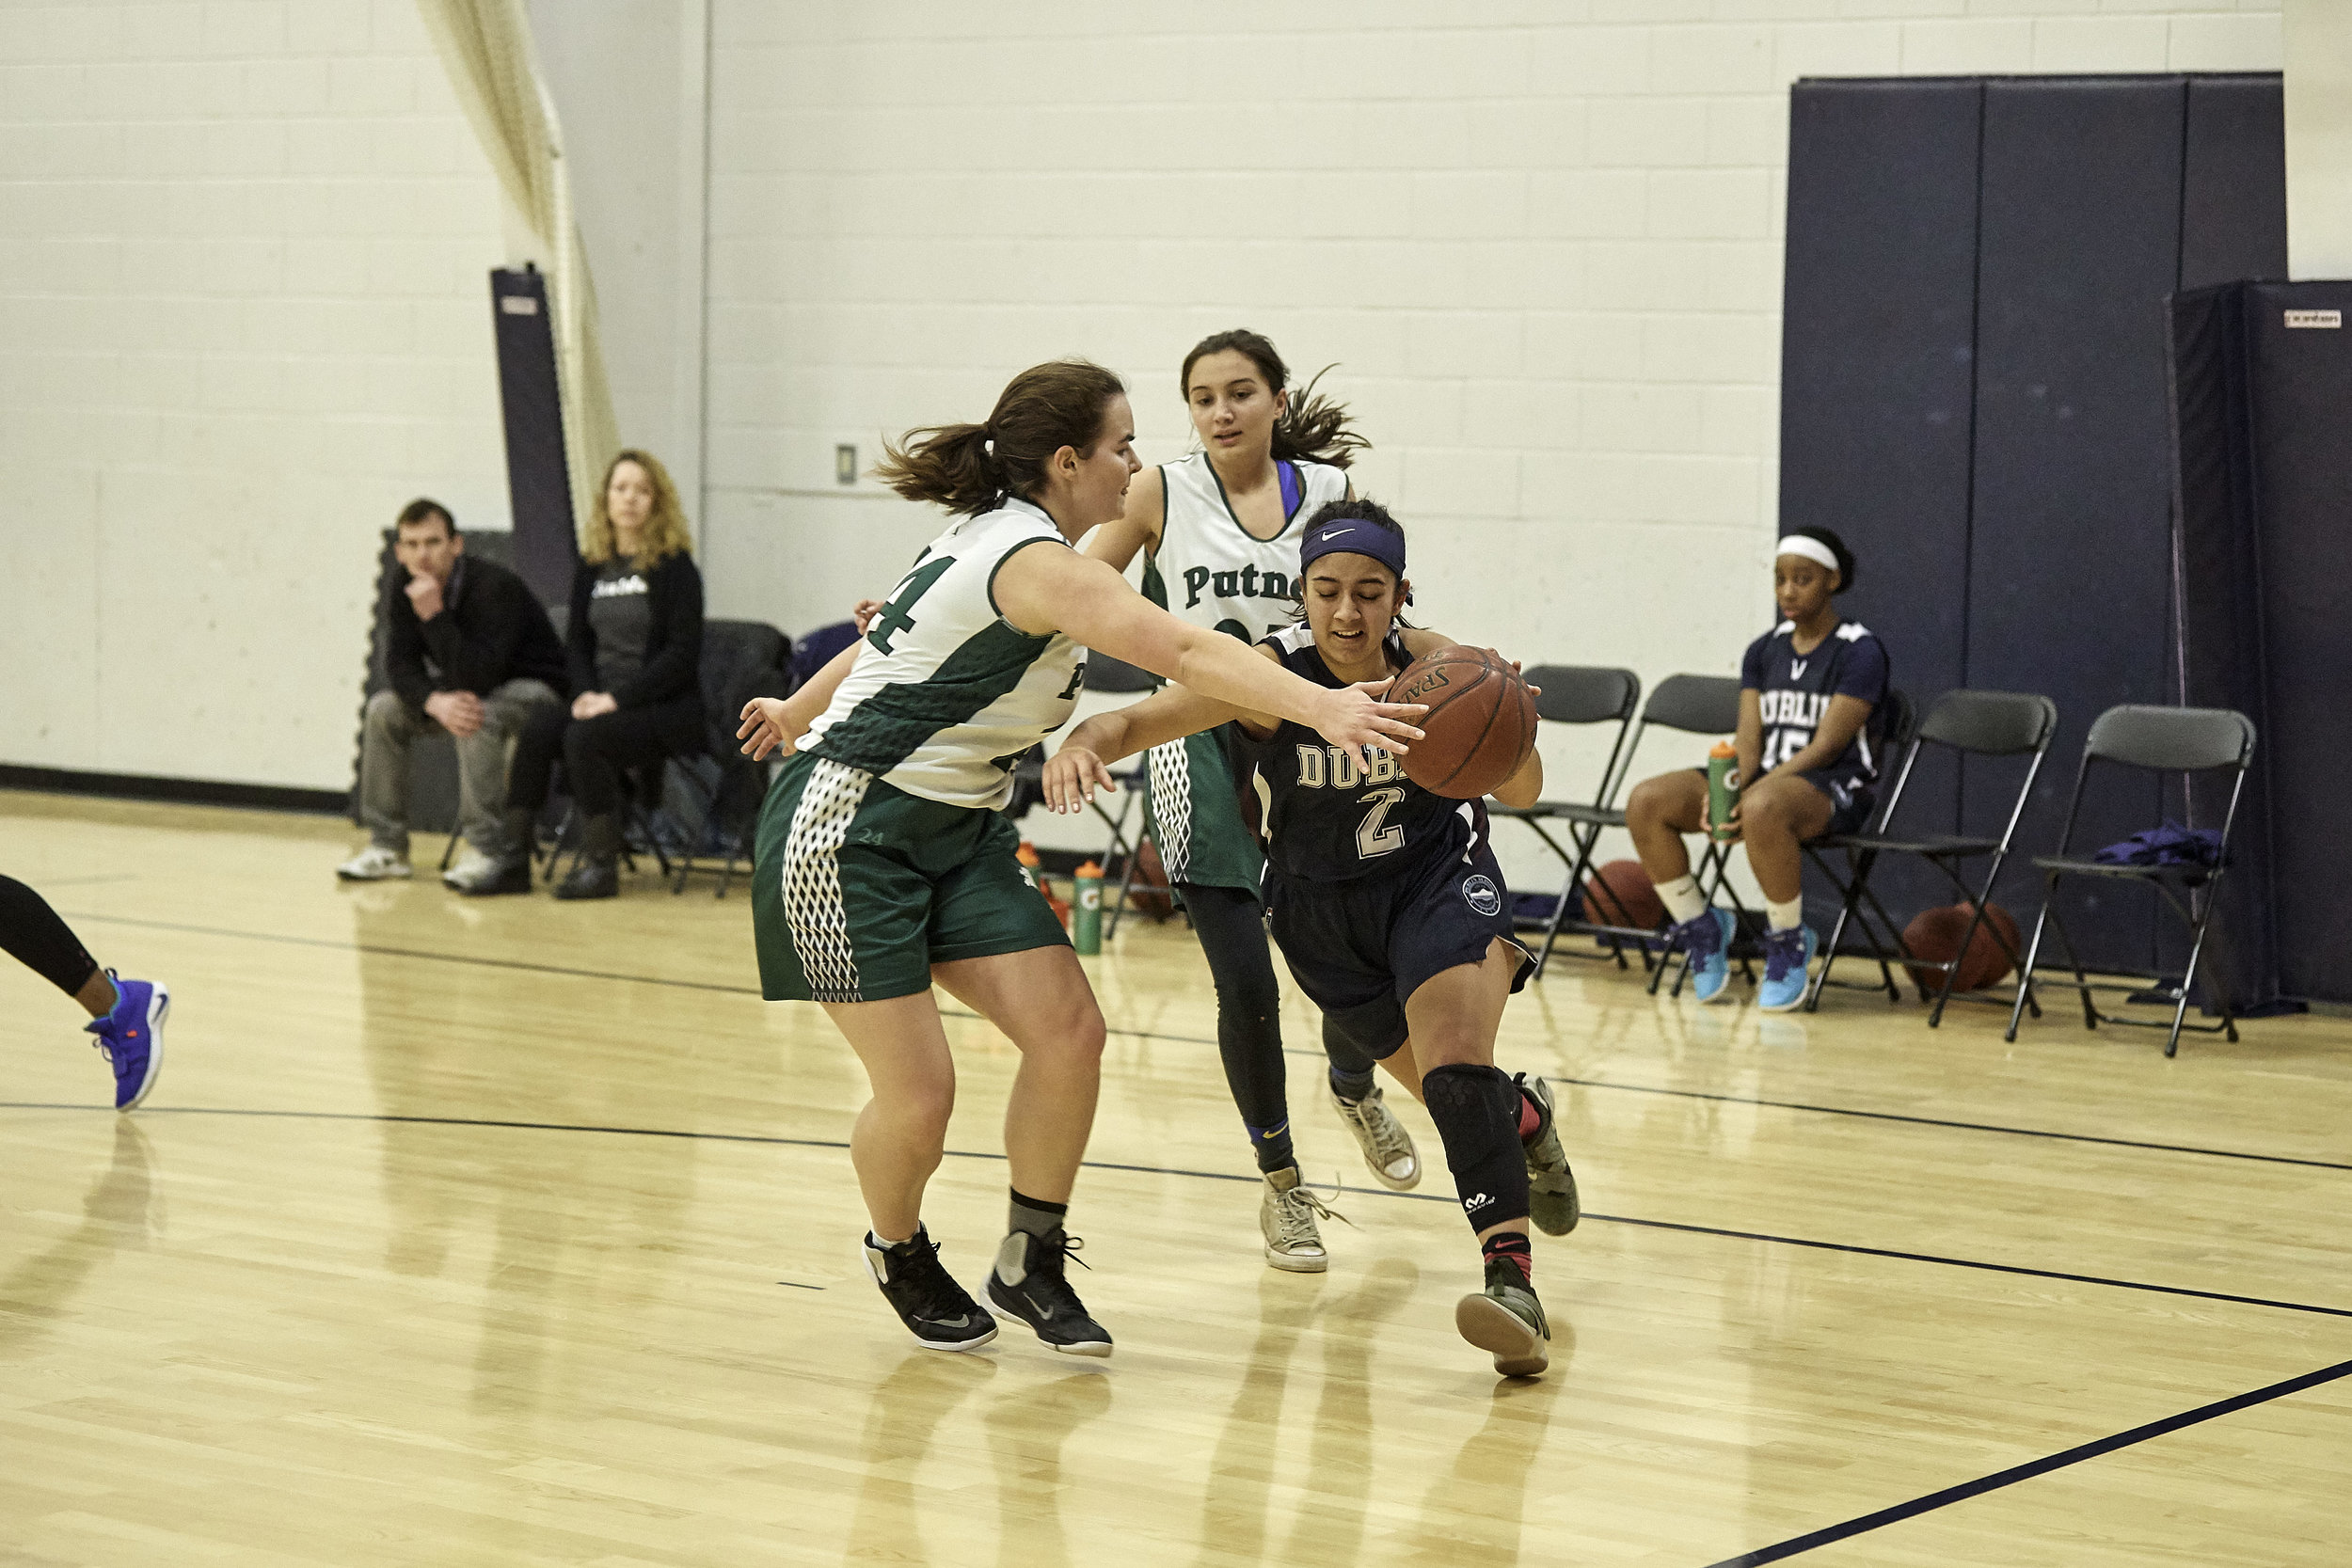 Basketball vs Putney School, February 9, 2019 - 167455.jpg